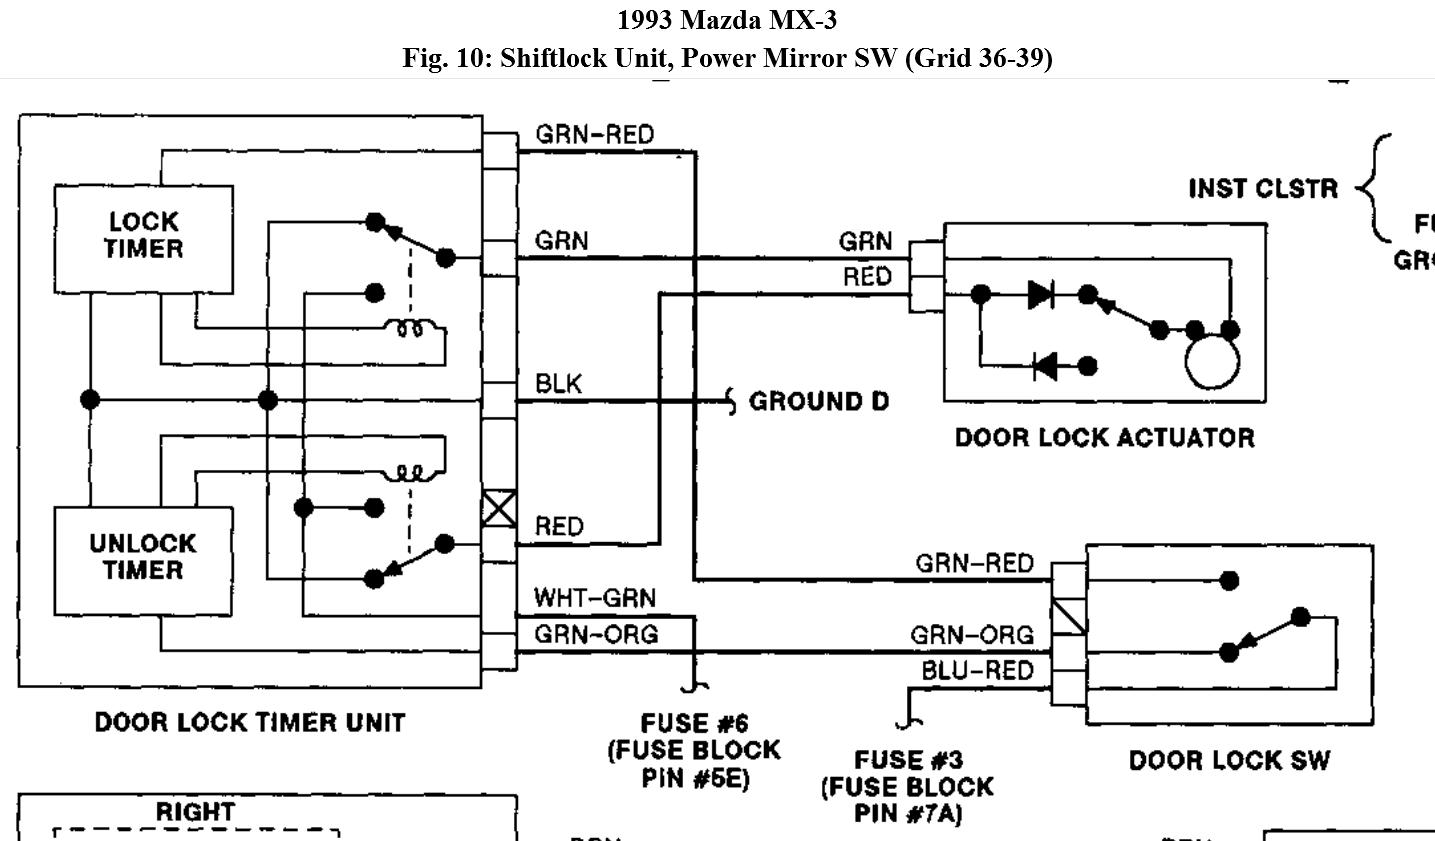 Door Control Unit Block Diagram Start Building A Wiring Car Schematic Problem Opening Power Locks When I Click My Remote To Rh 2carpros Com Controls Examples